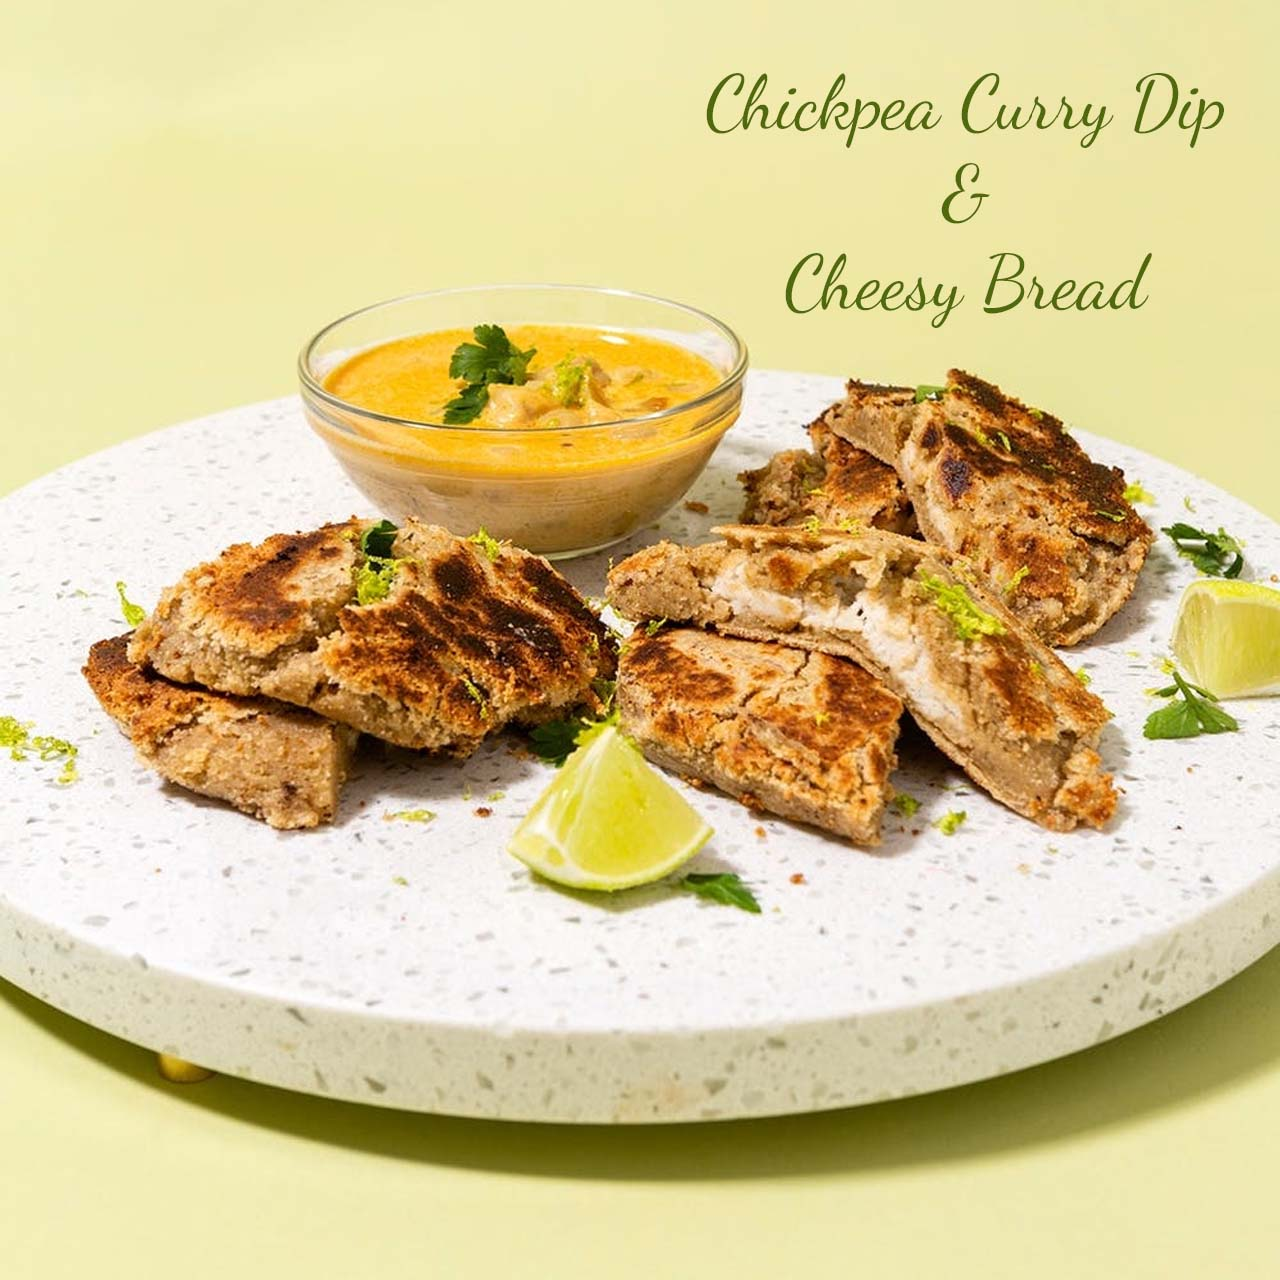 Chickpea Curry Dip With Bread